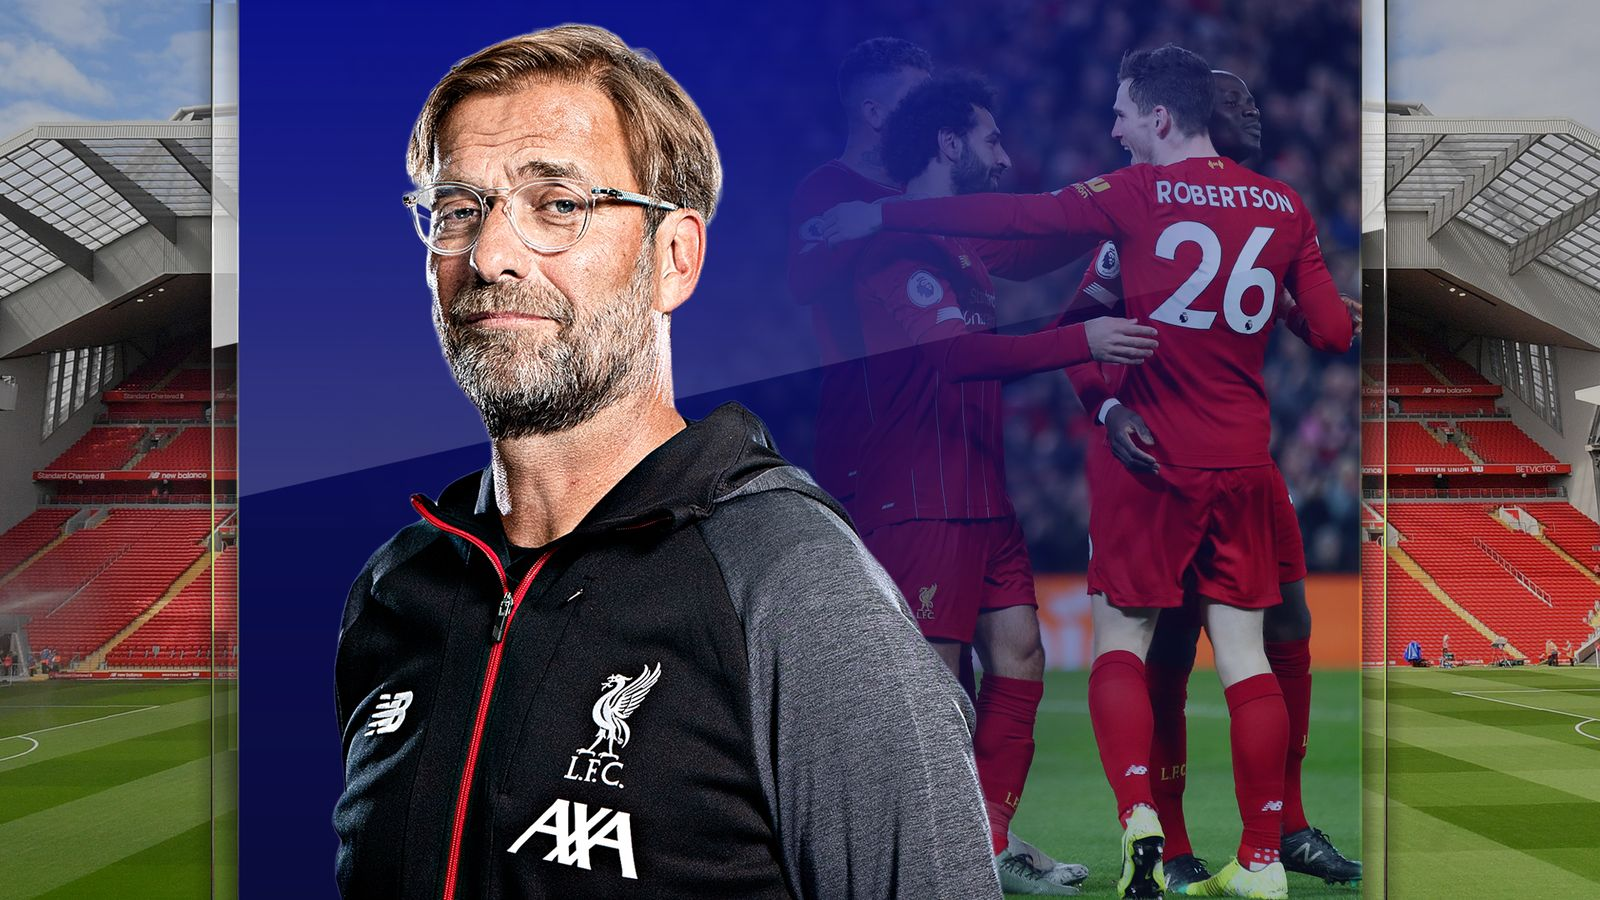 Liverpool recruits players at the right age while rivals make mistakes Football news